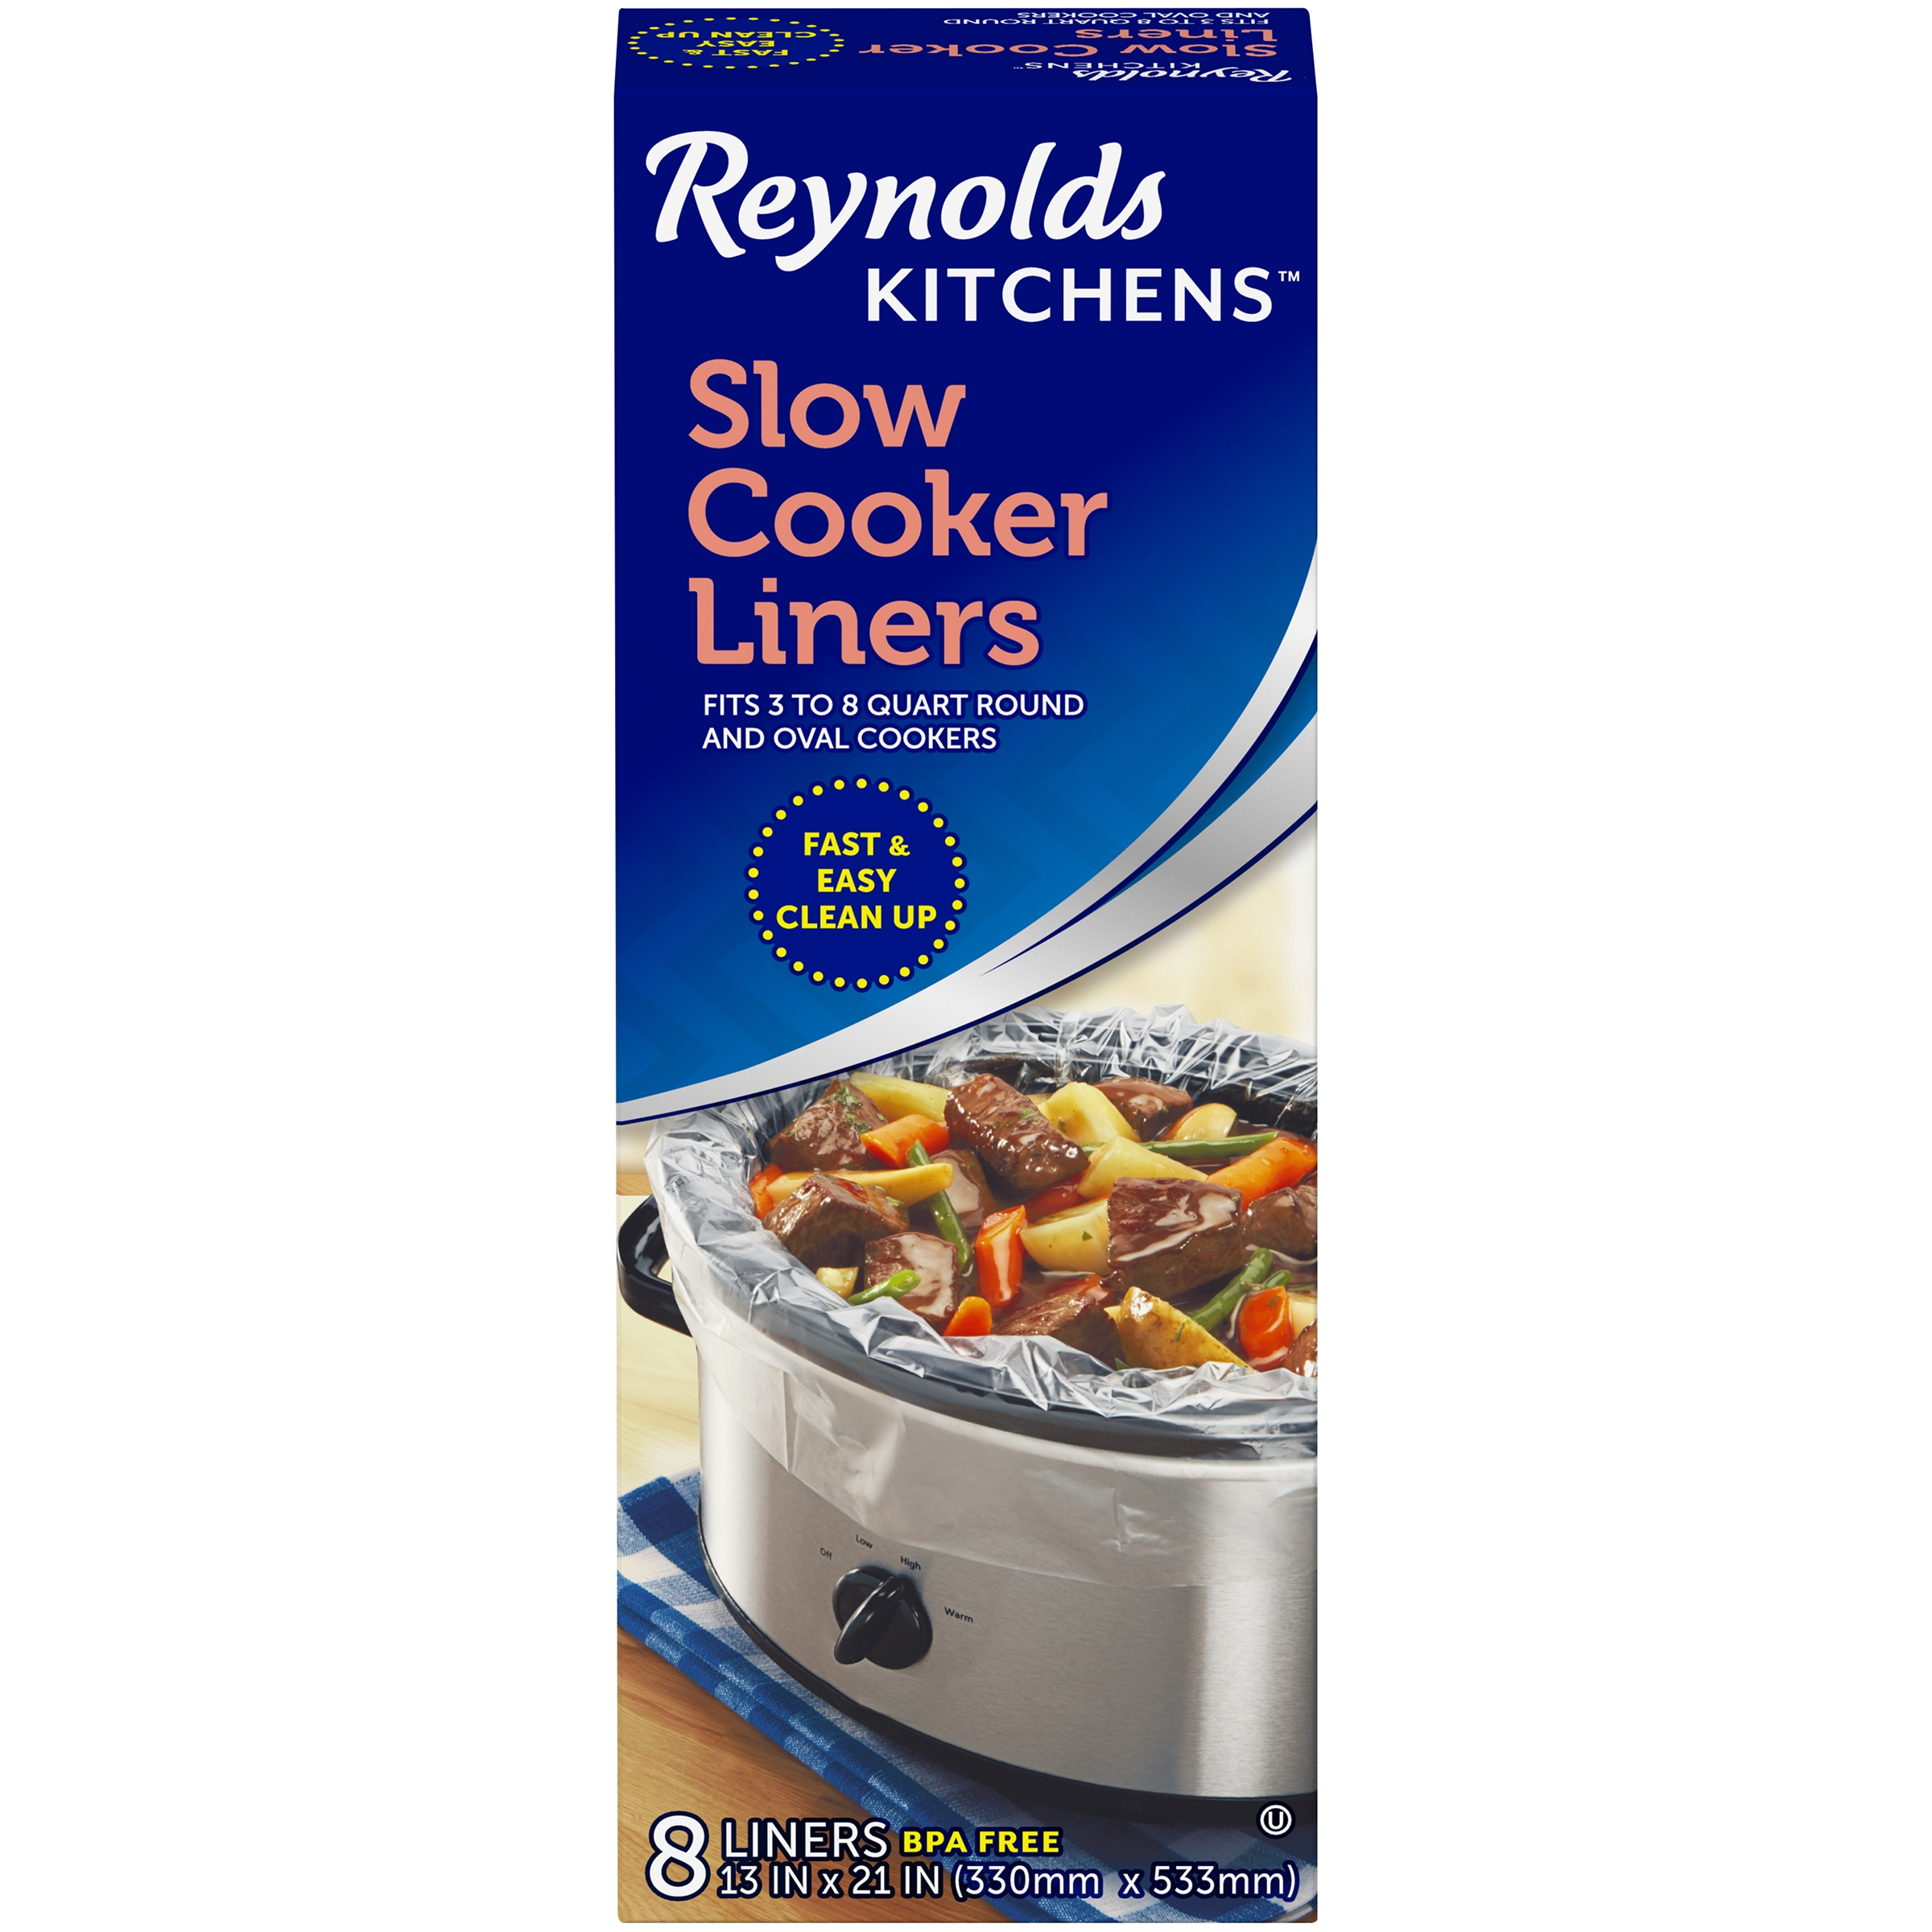 Slow Cooker Liners Crock Pot Bags Collections Kitchen Cooking Home Cooks 6 Pcs 3